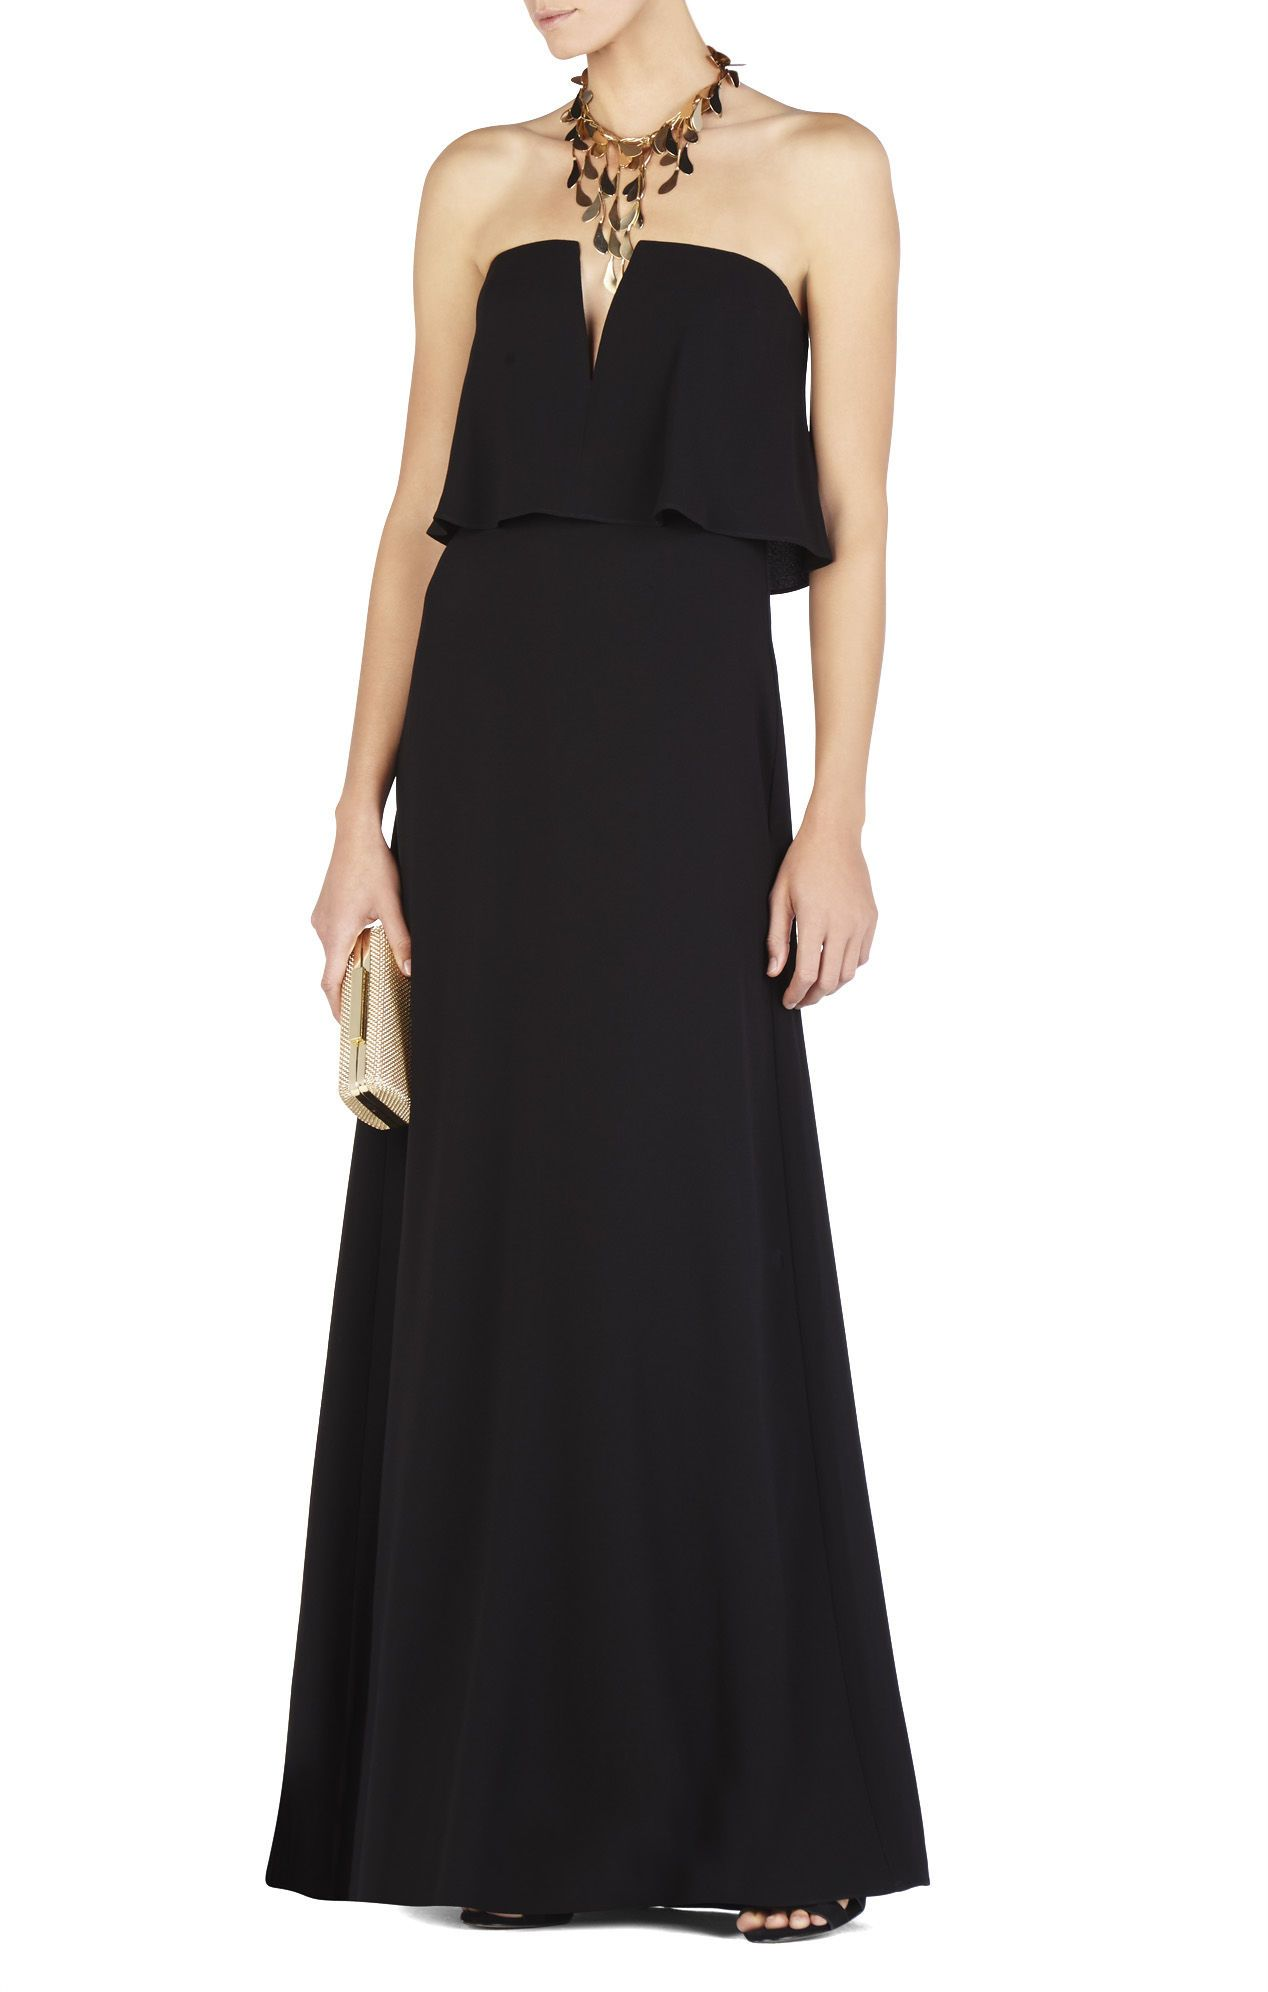 d11596adbe6 Alyse Strapless Overlay Gown